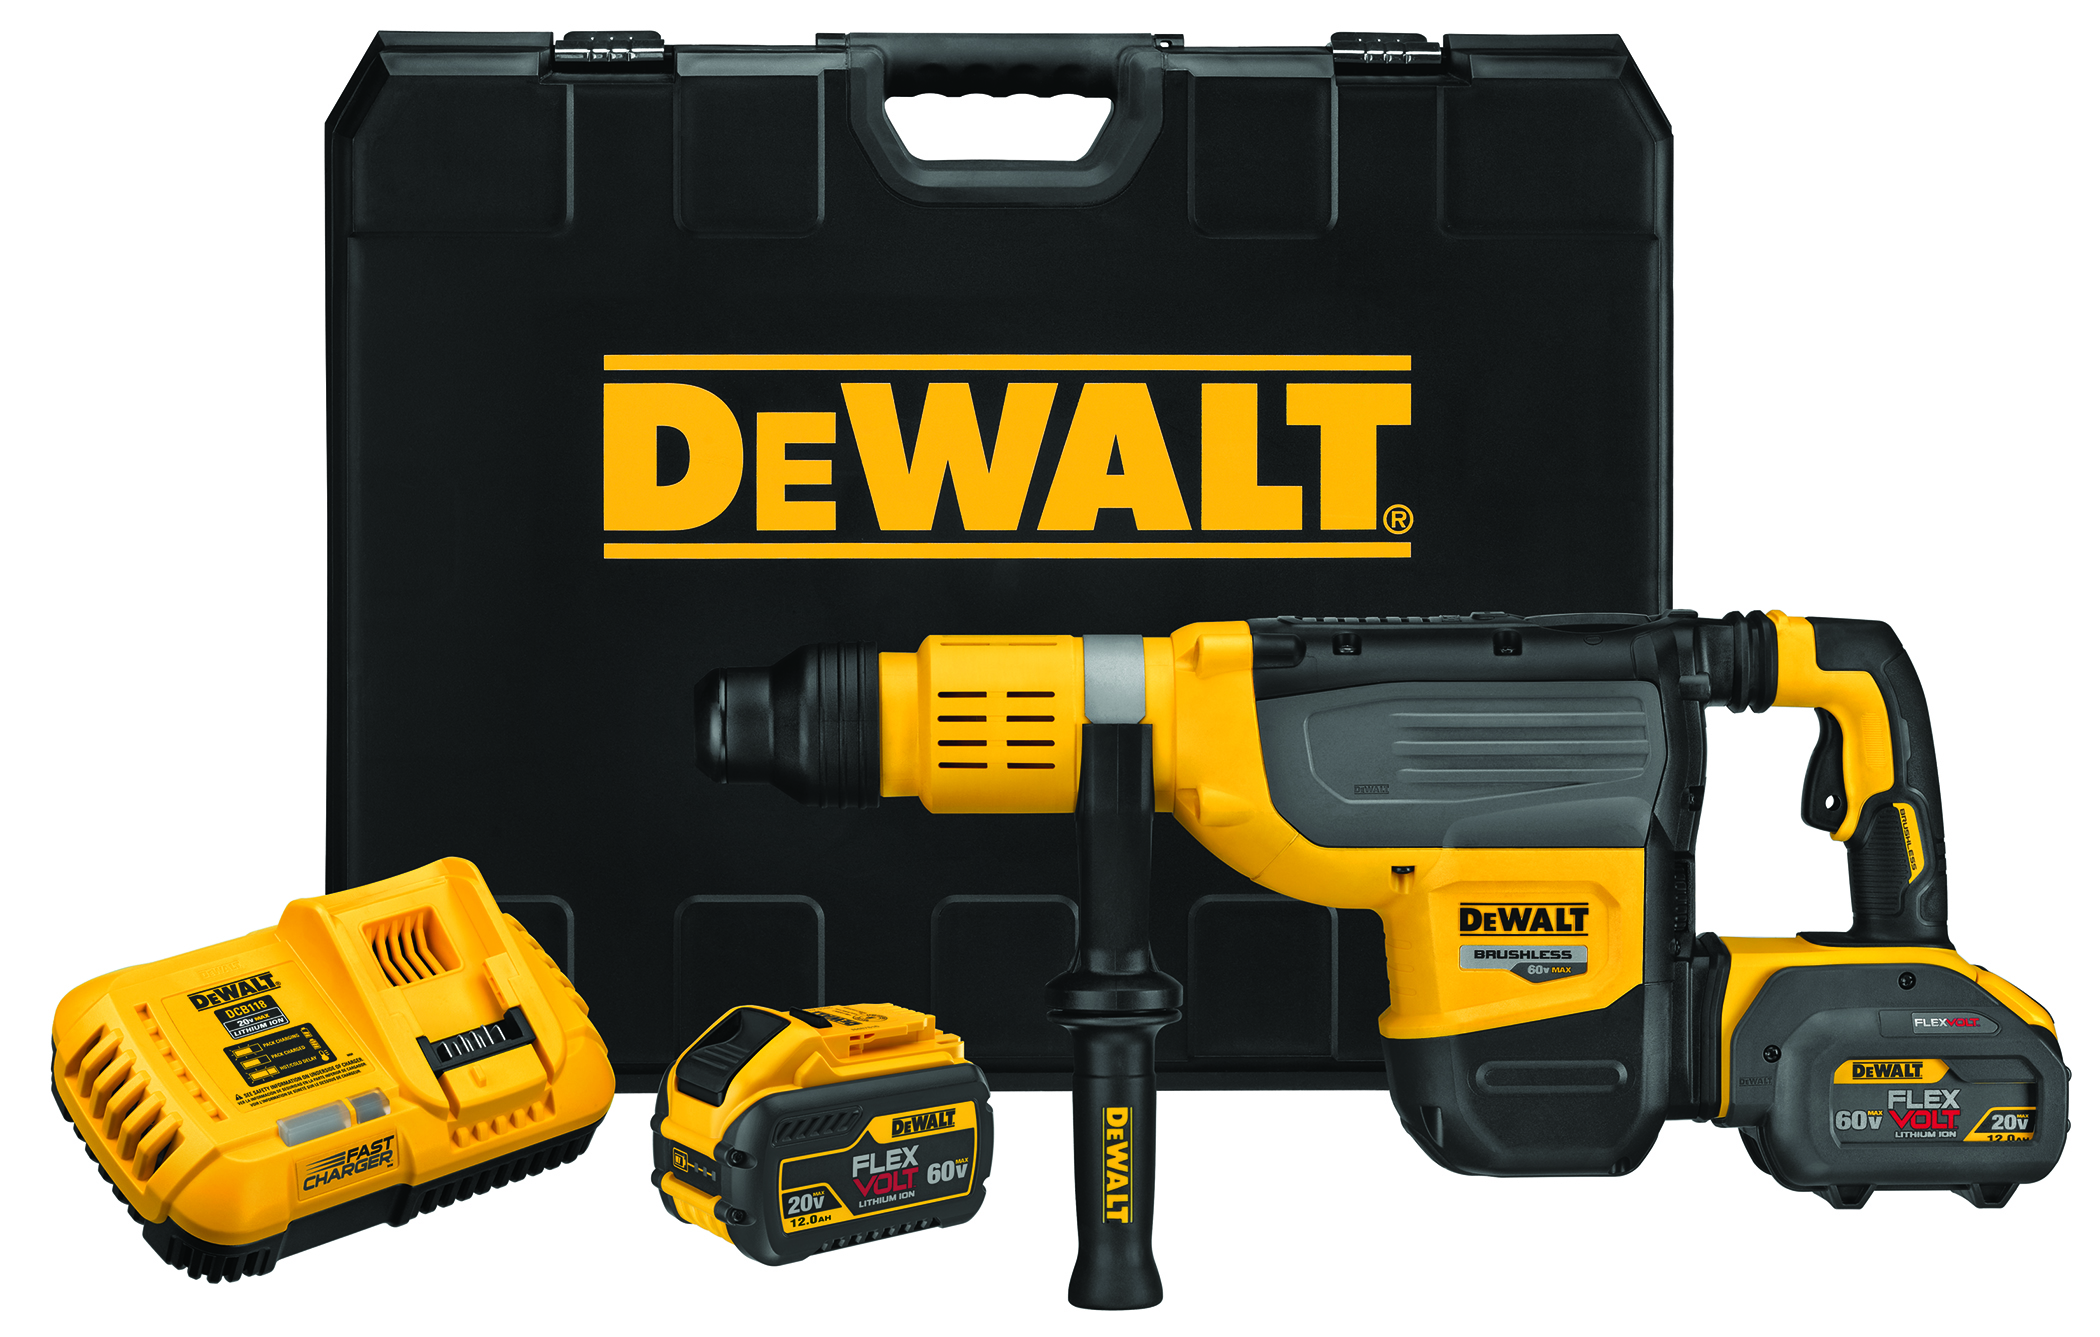 DeWalt and Stihl present new tools at World of Concrete